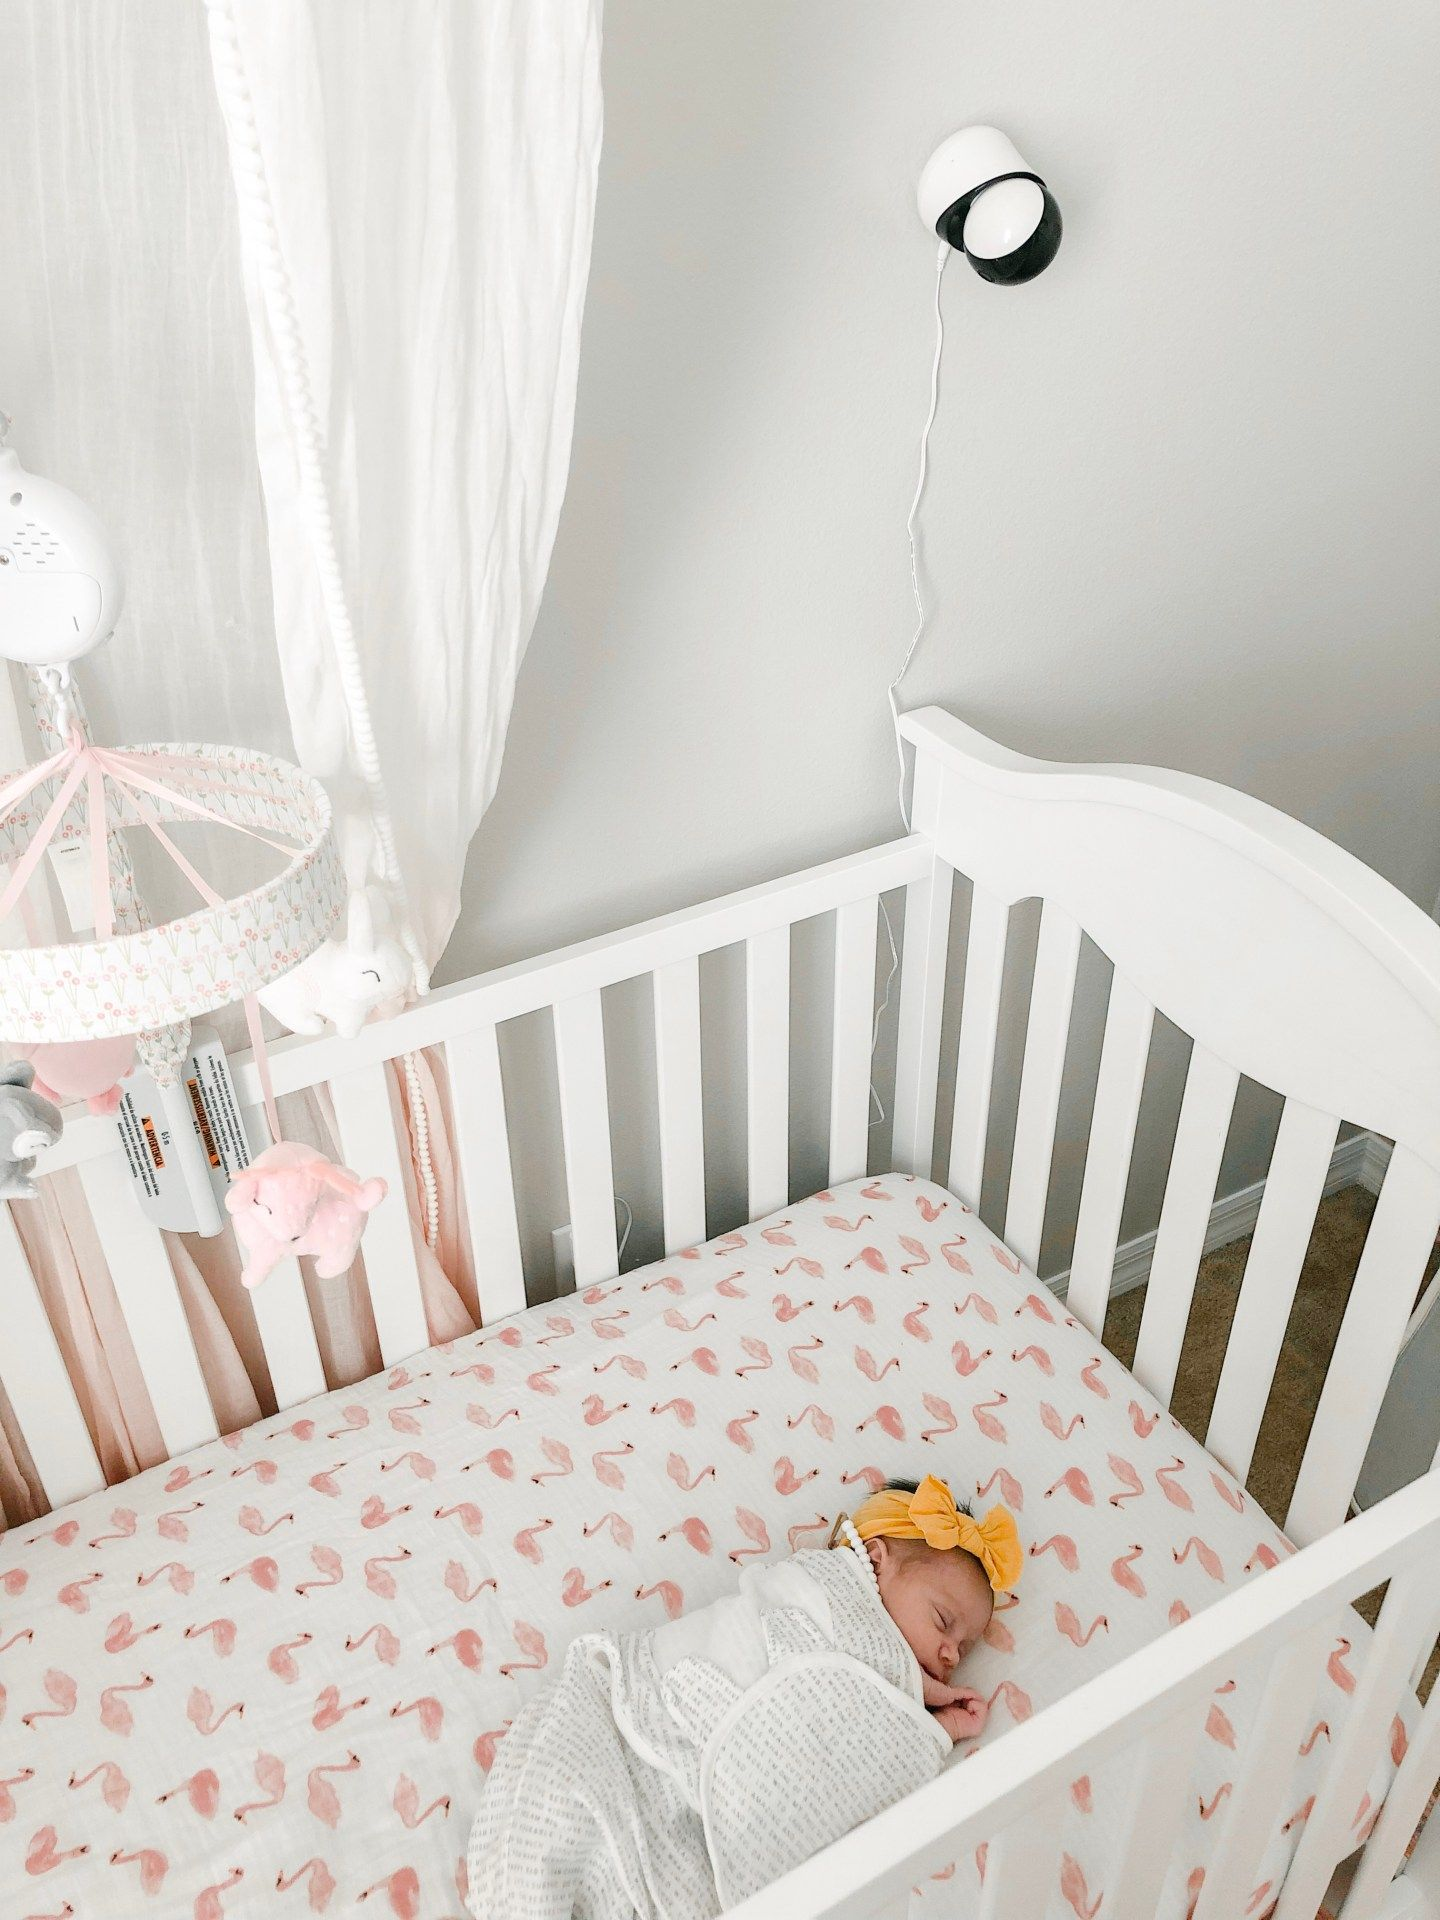 Smart Beat Video Baby Monitor With Breath Detection Baby